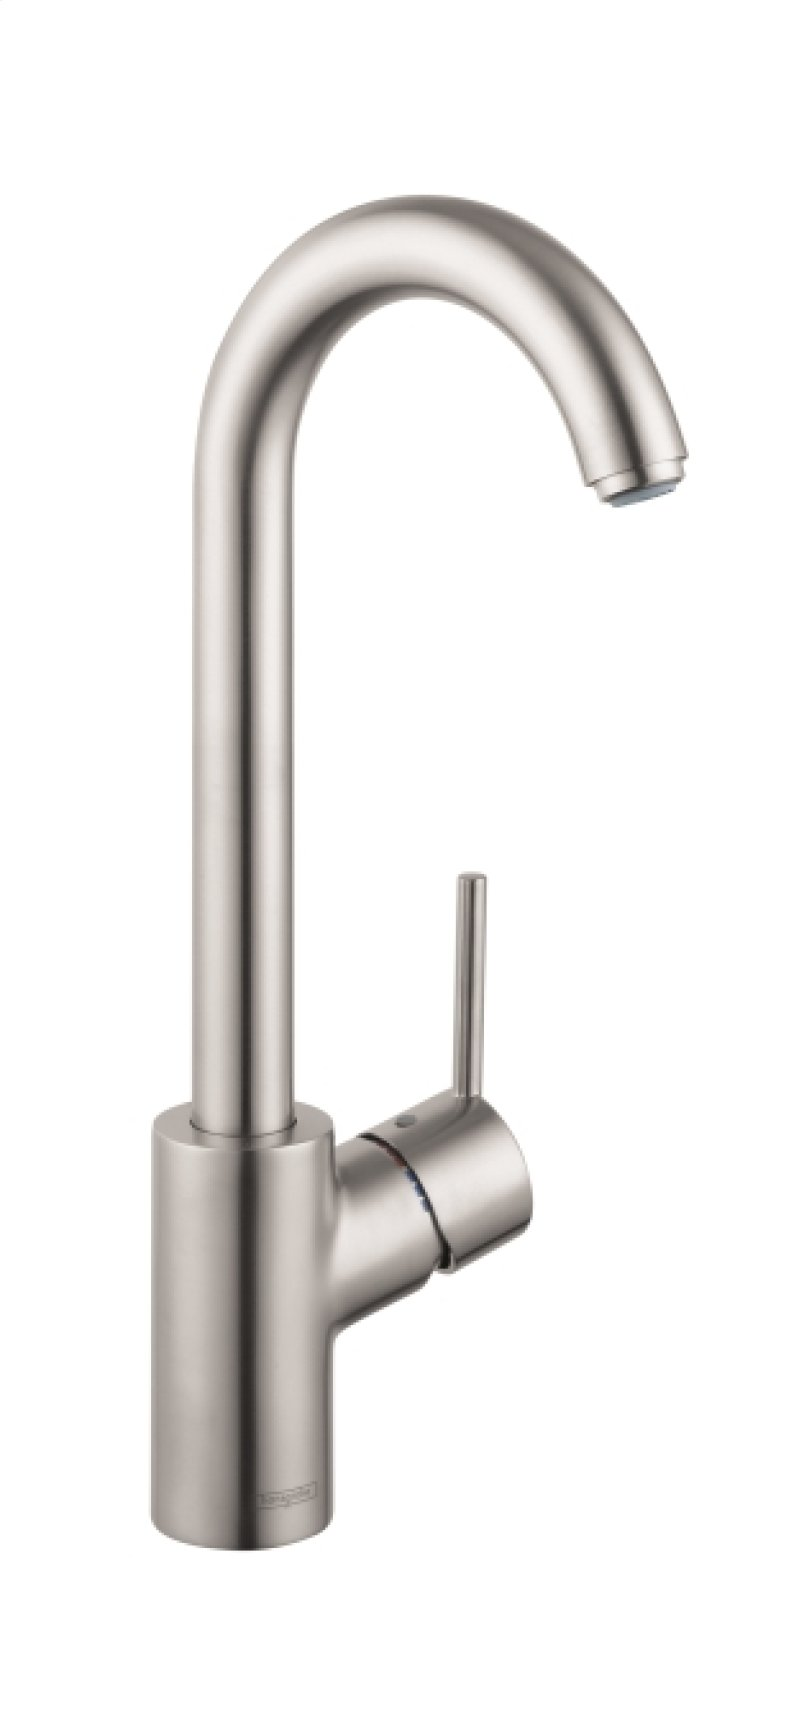 04287800 by Hansgrohe in Atlanta, GA - Stainless Steel Finish Talis ...